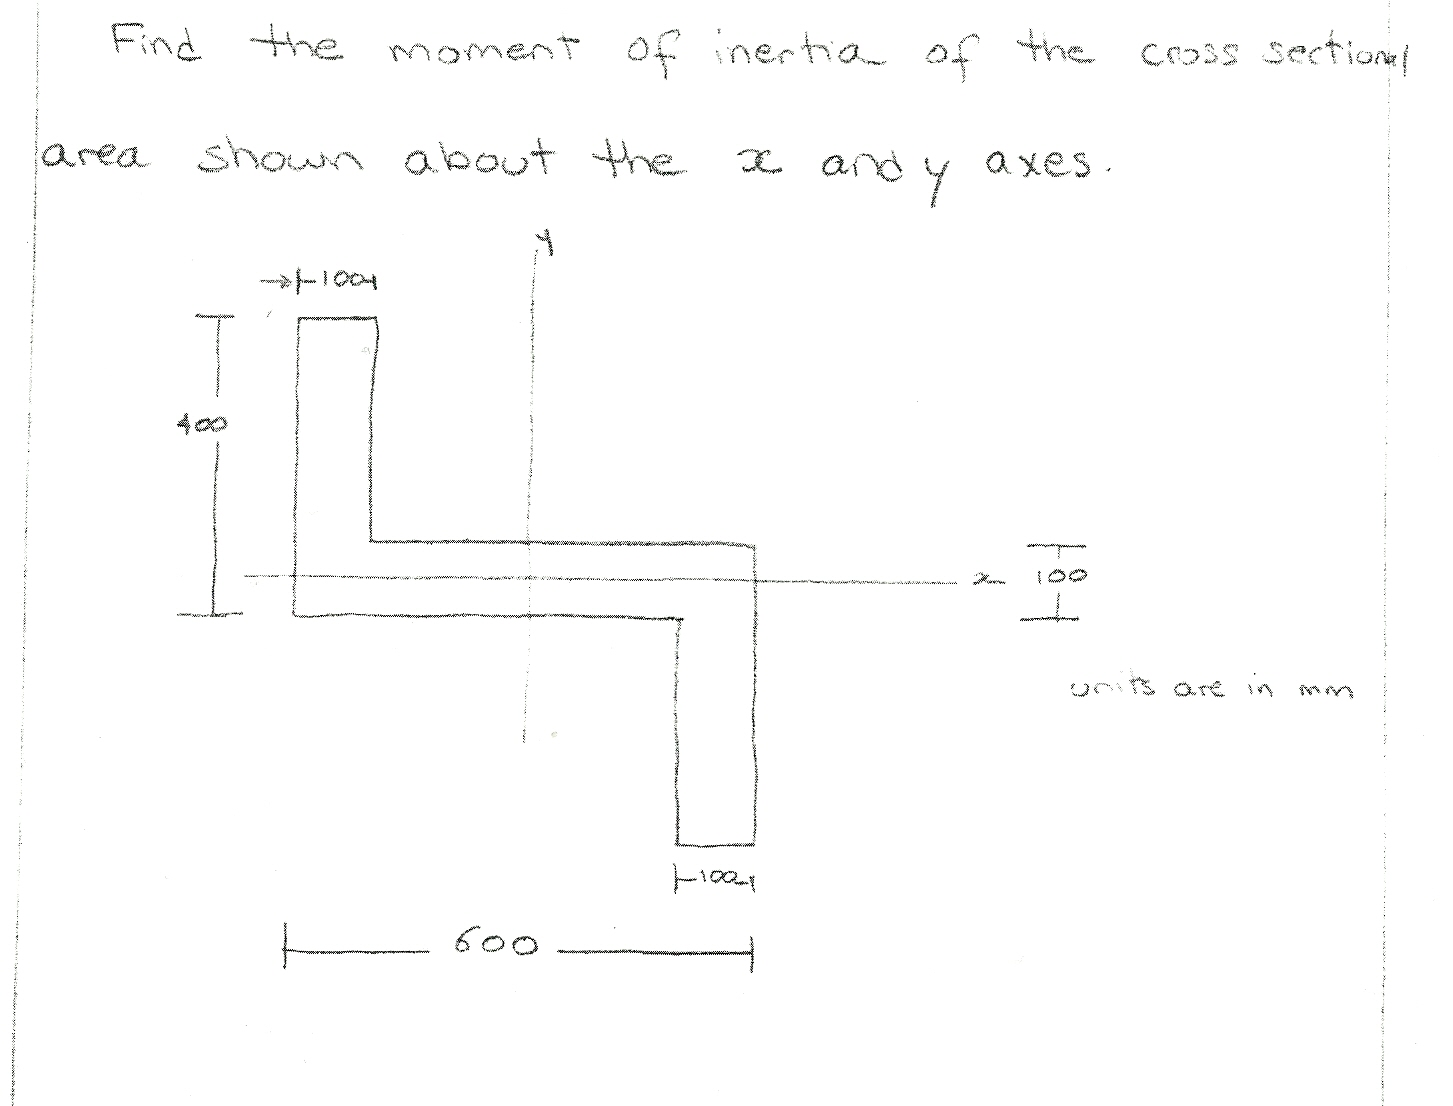 Find the moment of inertia of the cross sectional